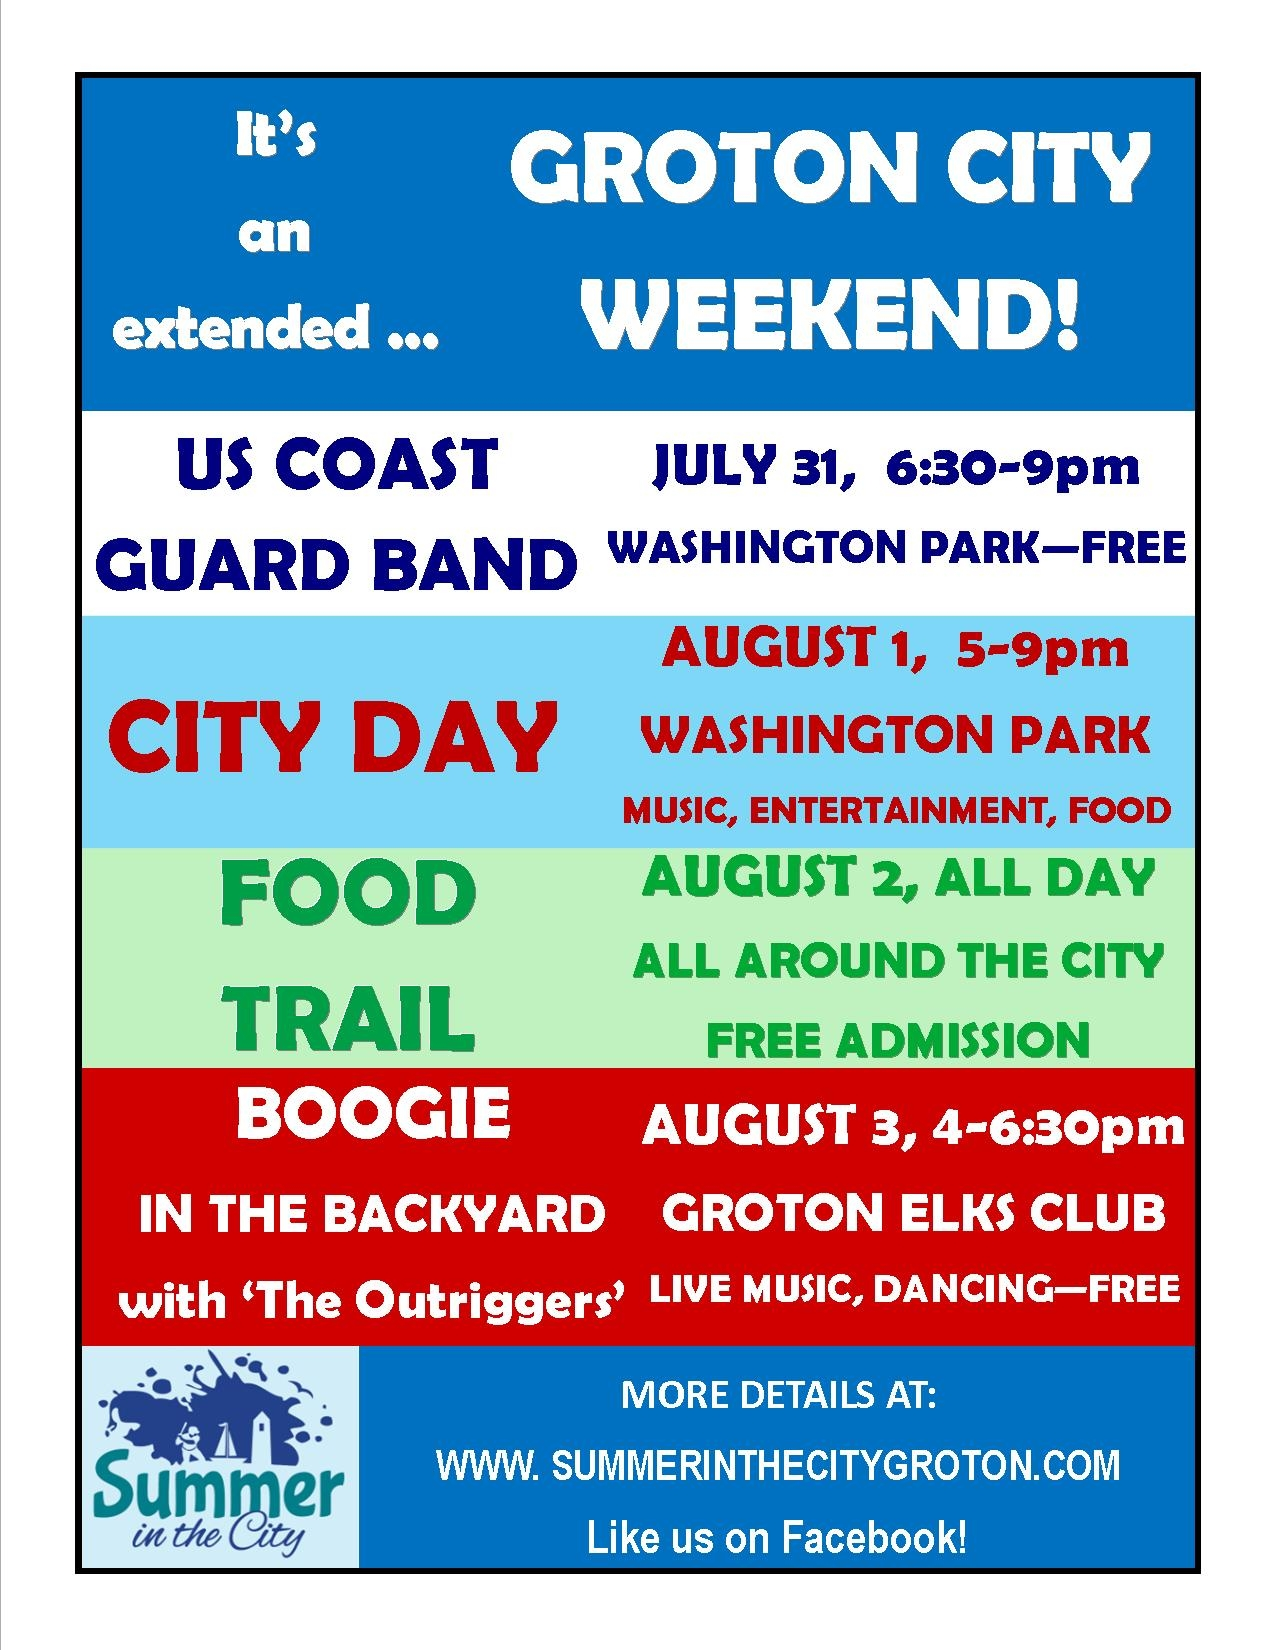 GROTON CITY WEEKEND